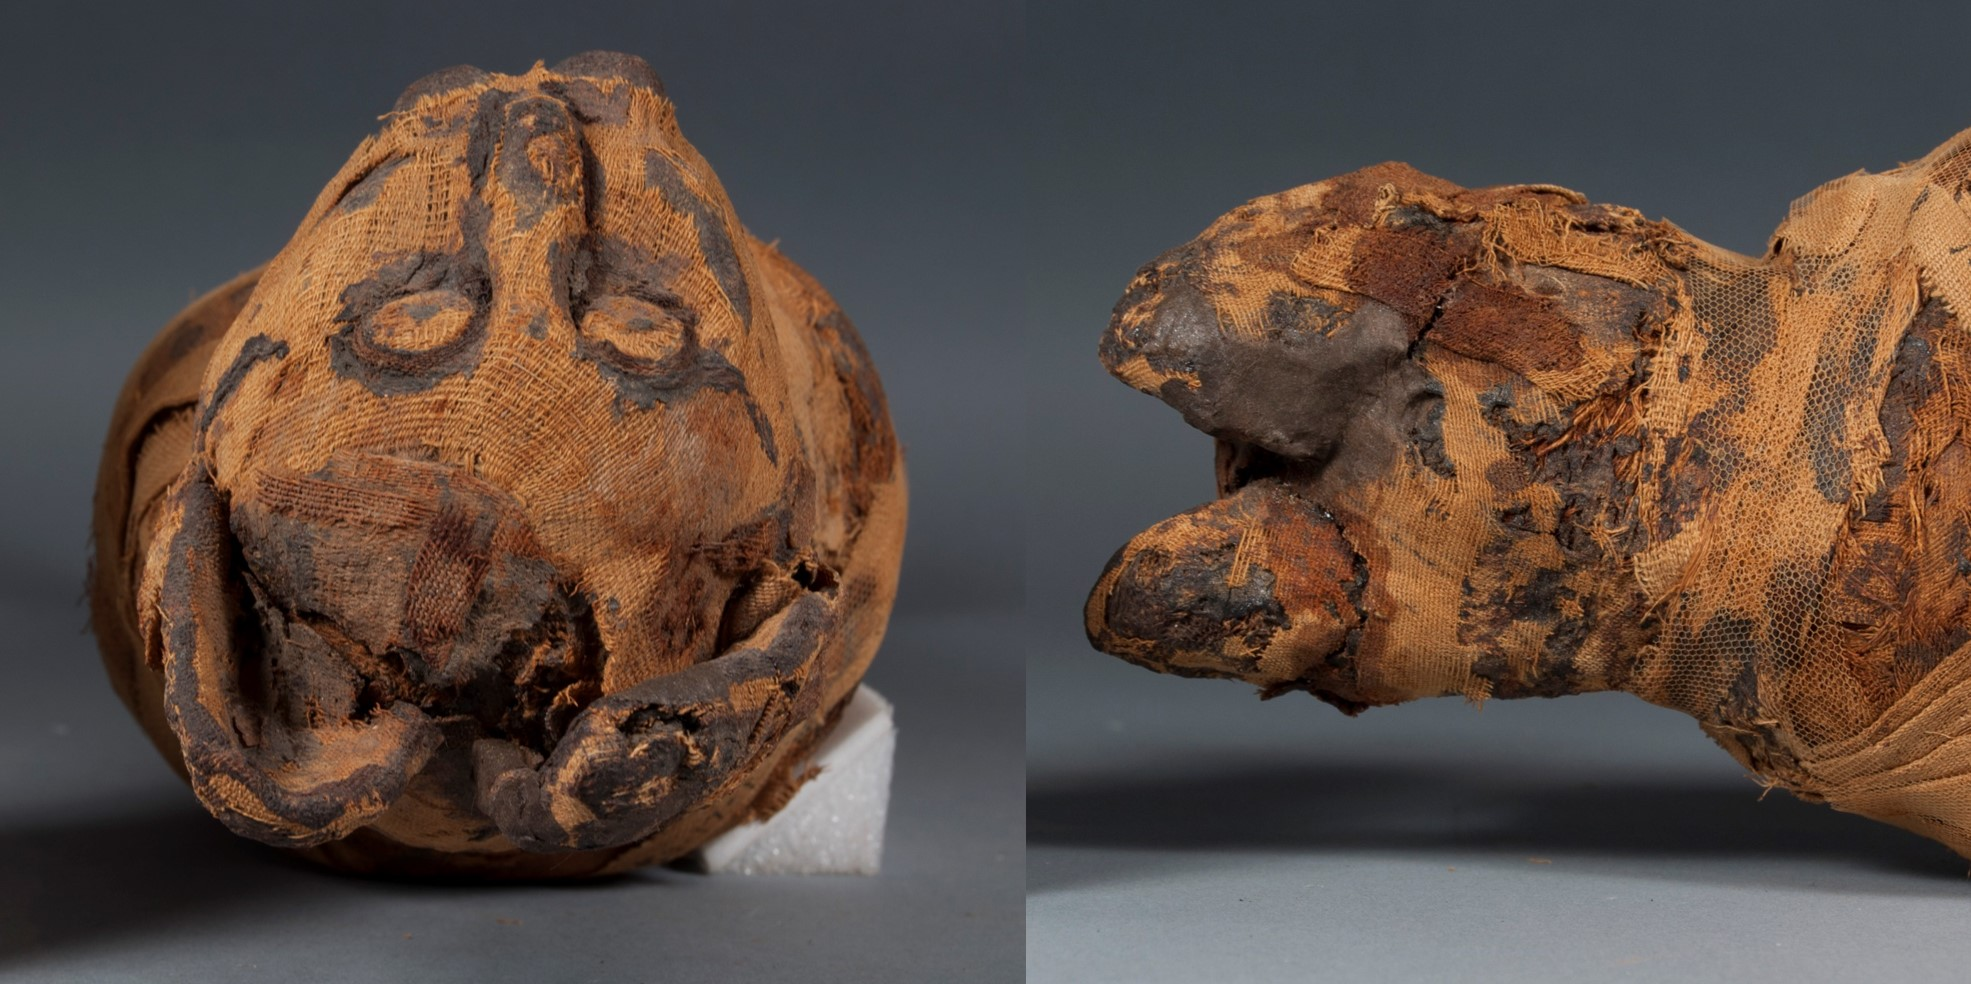 Two views of the cat mummy's head after treatment